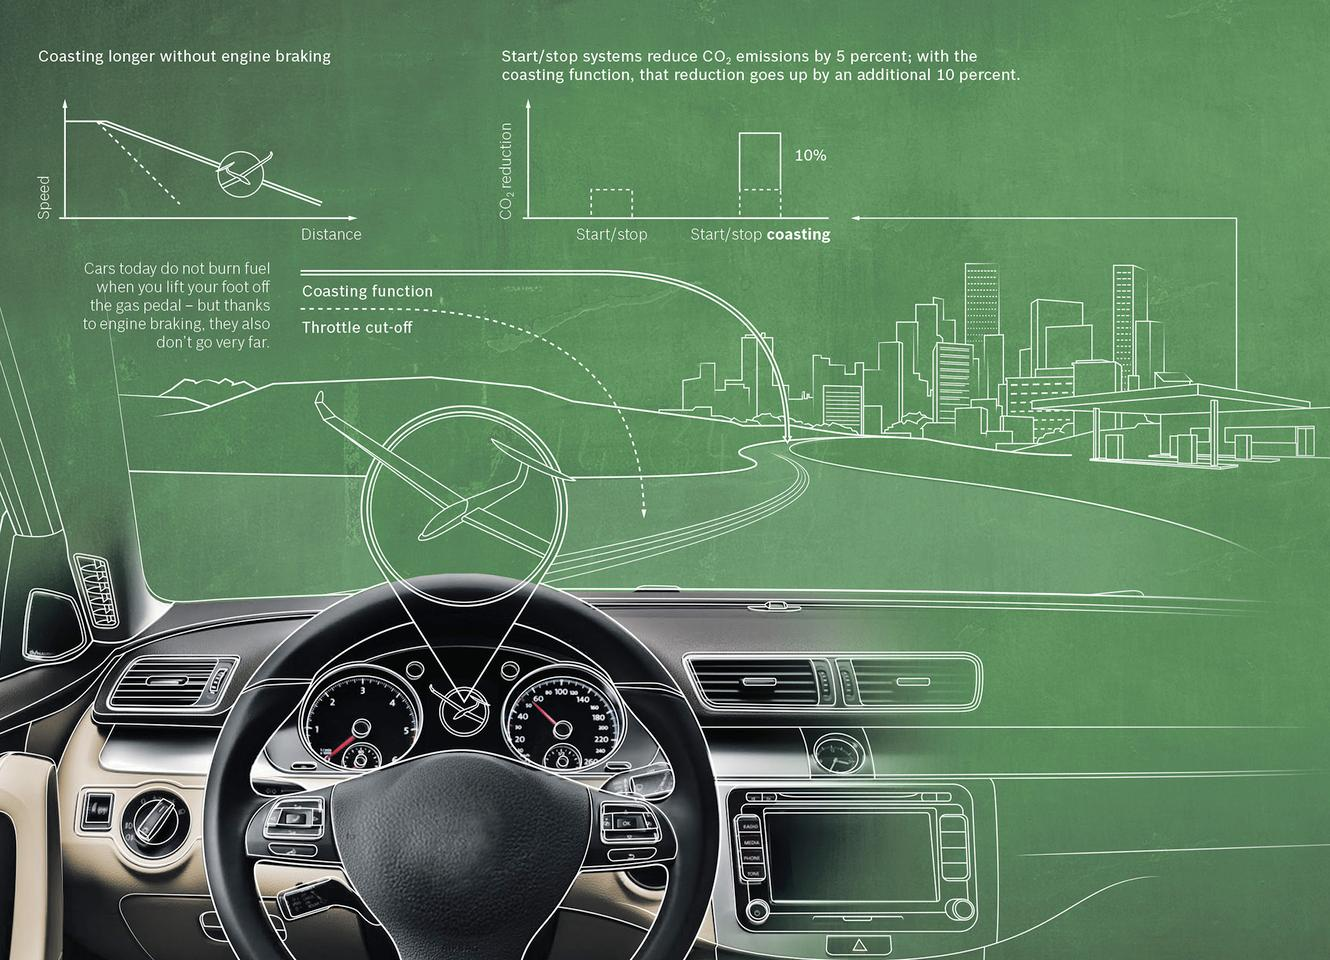 Bosch's new system is intended to reduce fuel consumption and CO2 emissions